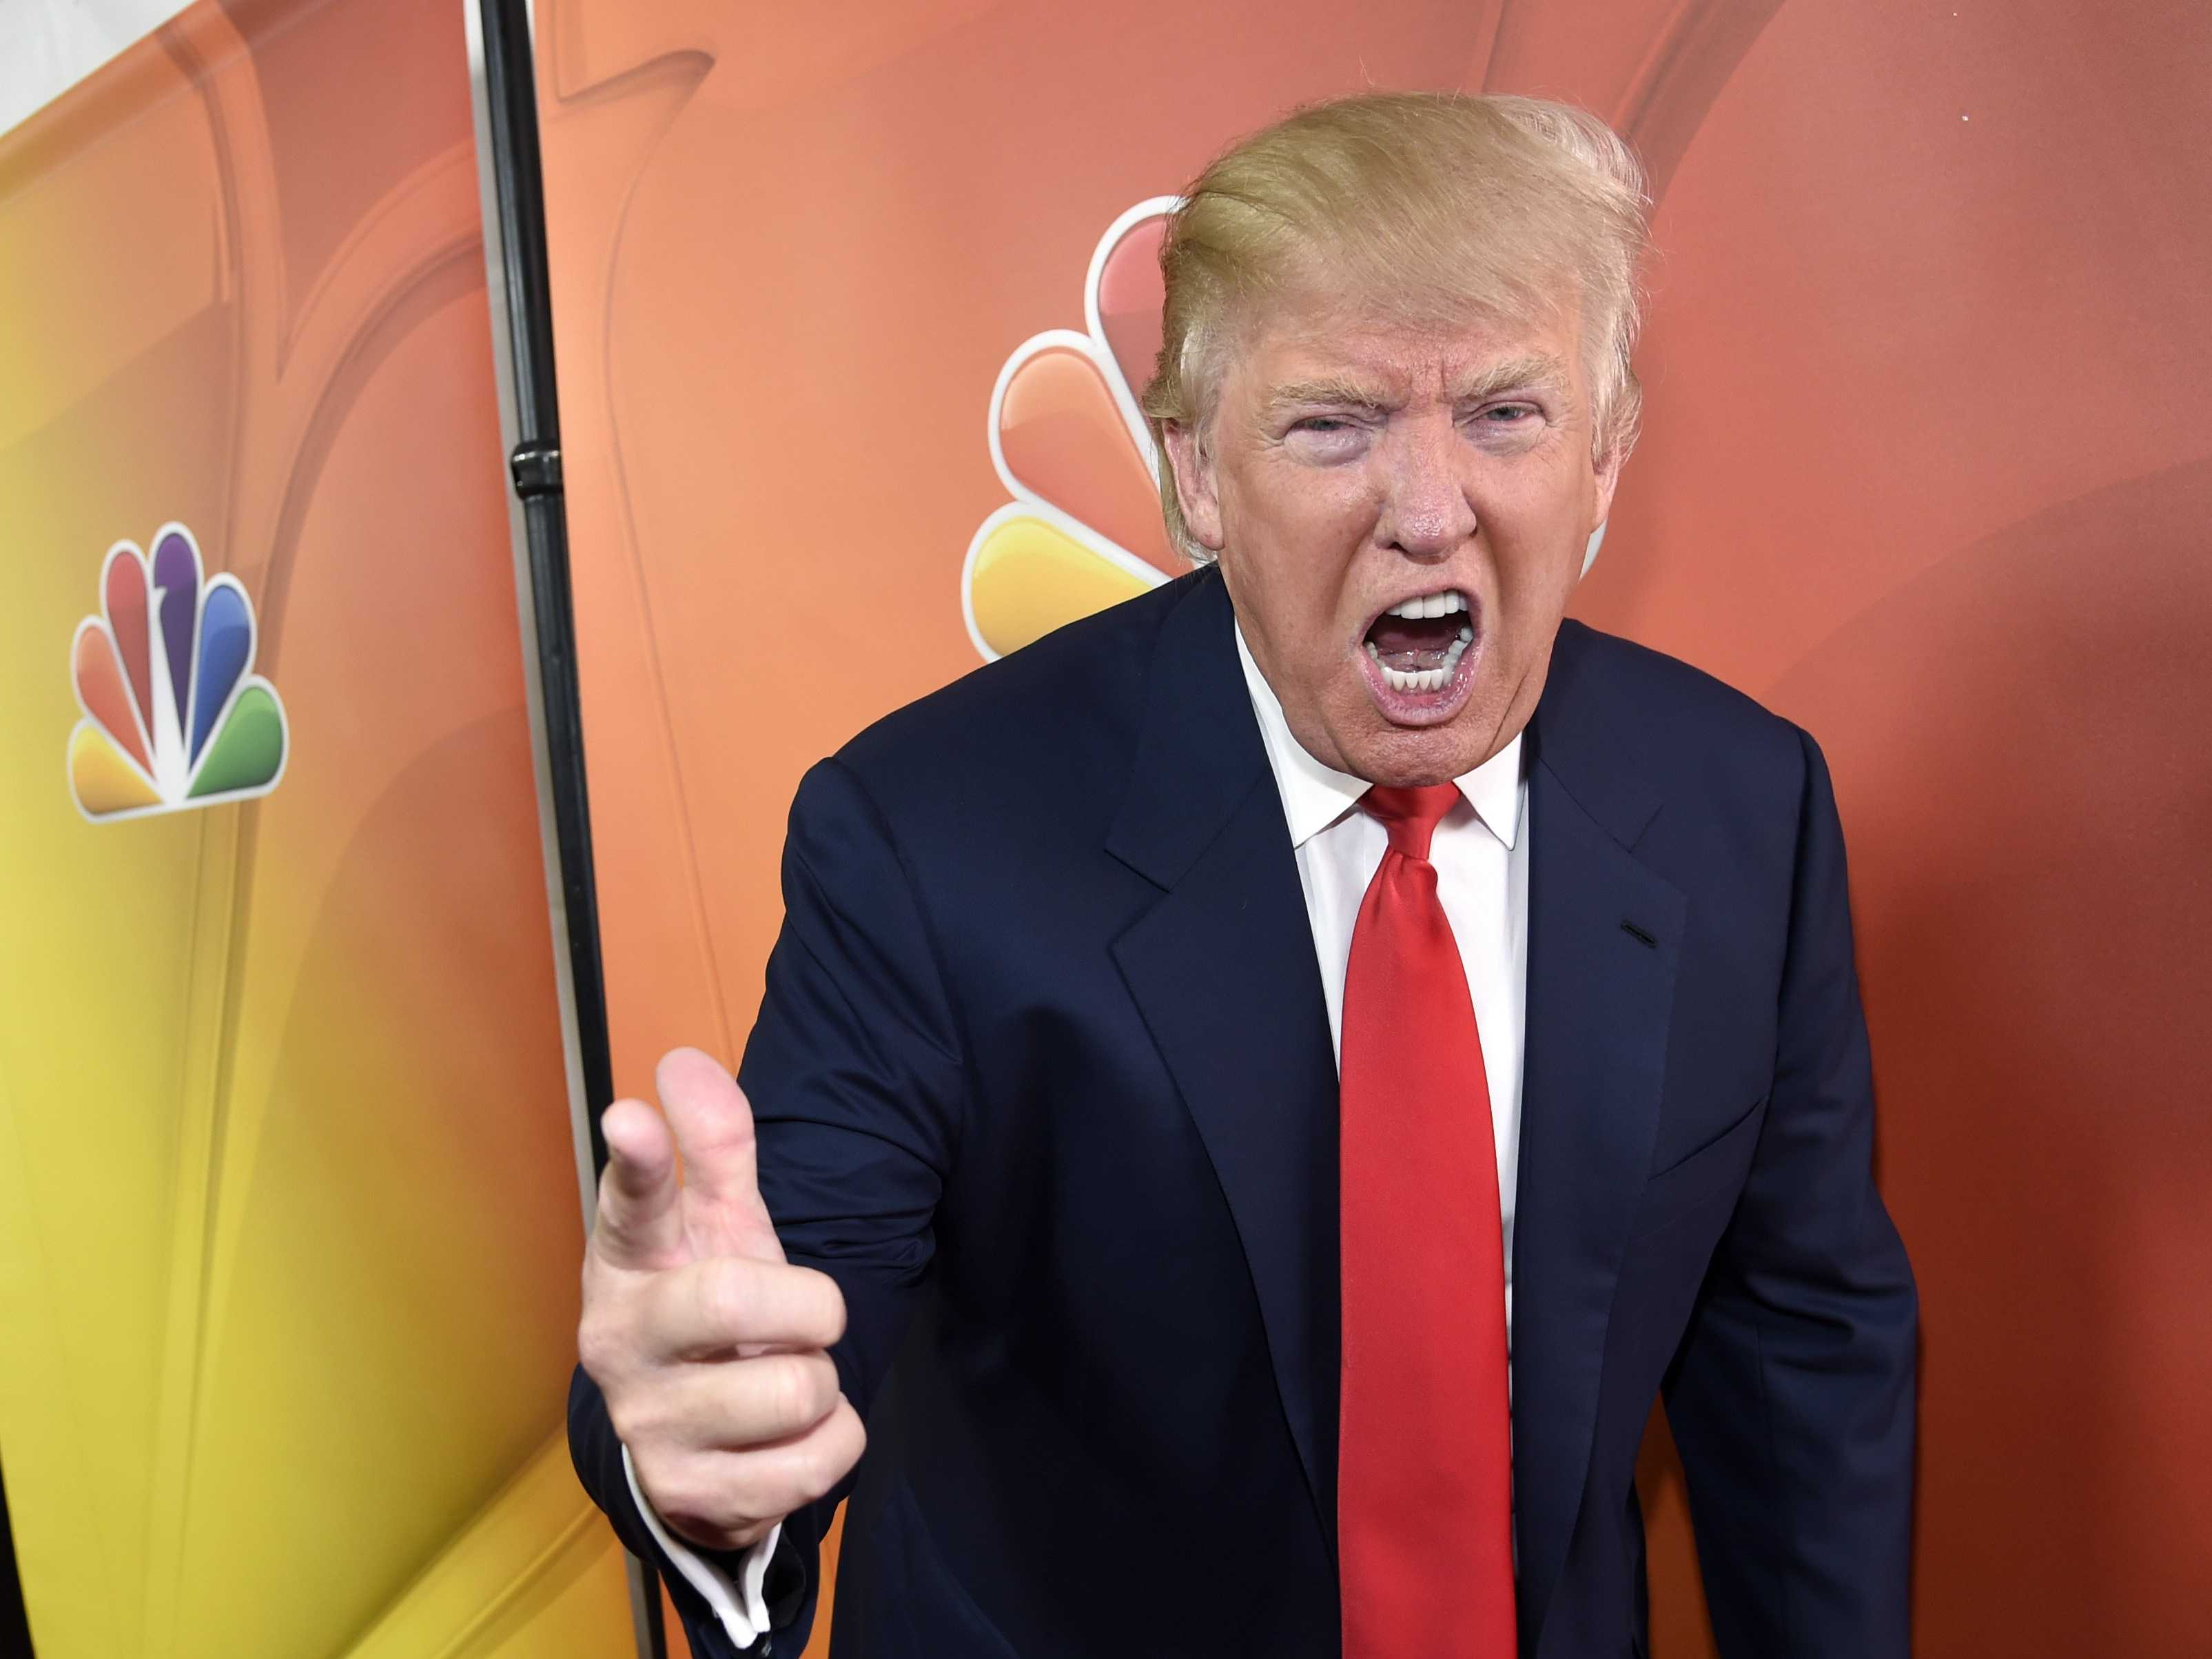 donald-trump-is-on-an-absolute-roll-after-wild-week-filled-with-twitter-fights-and-heated-debates-about-rape